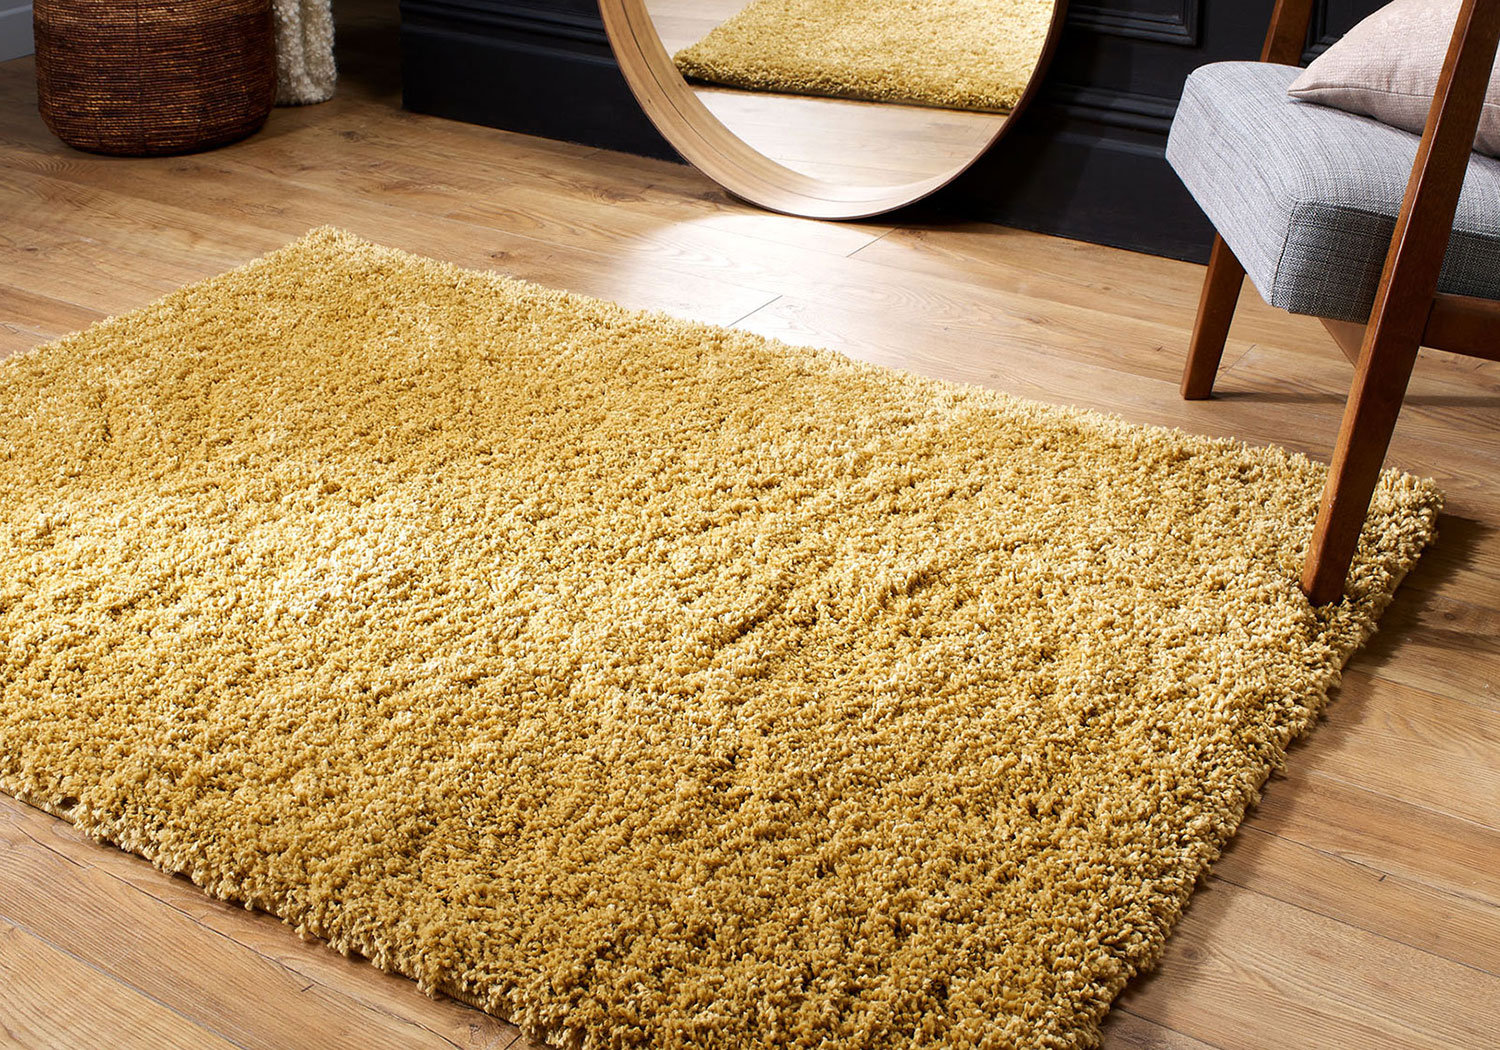 MODERN 5cm HIGH PLAIN SOFT NON-SHED SHAGGY SMALL X LARGE THICK LUXURIOUS NEW RUG